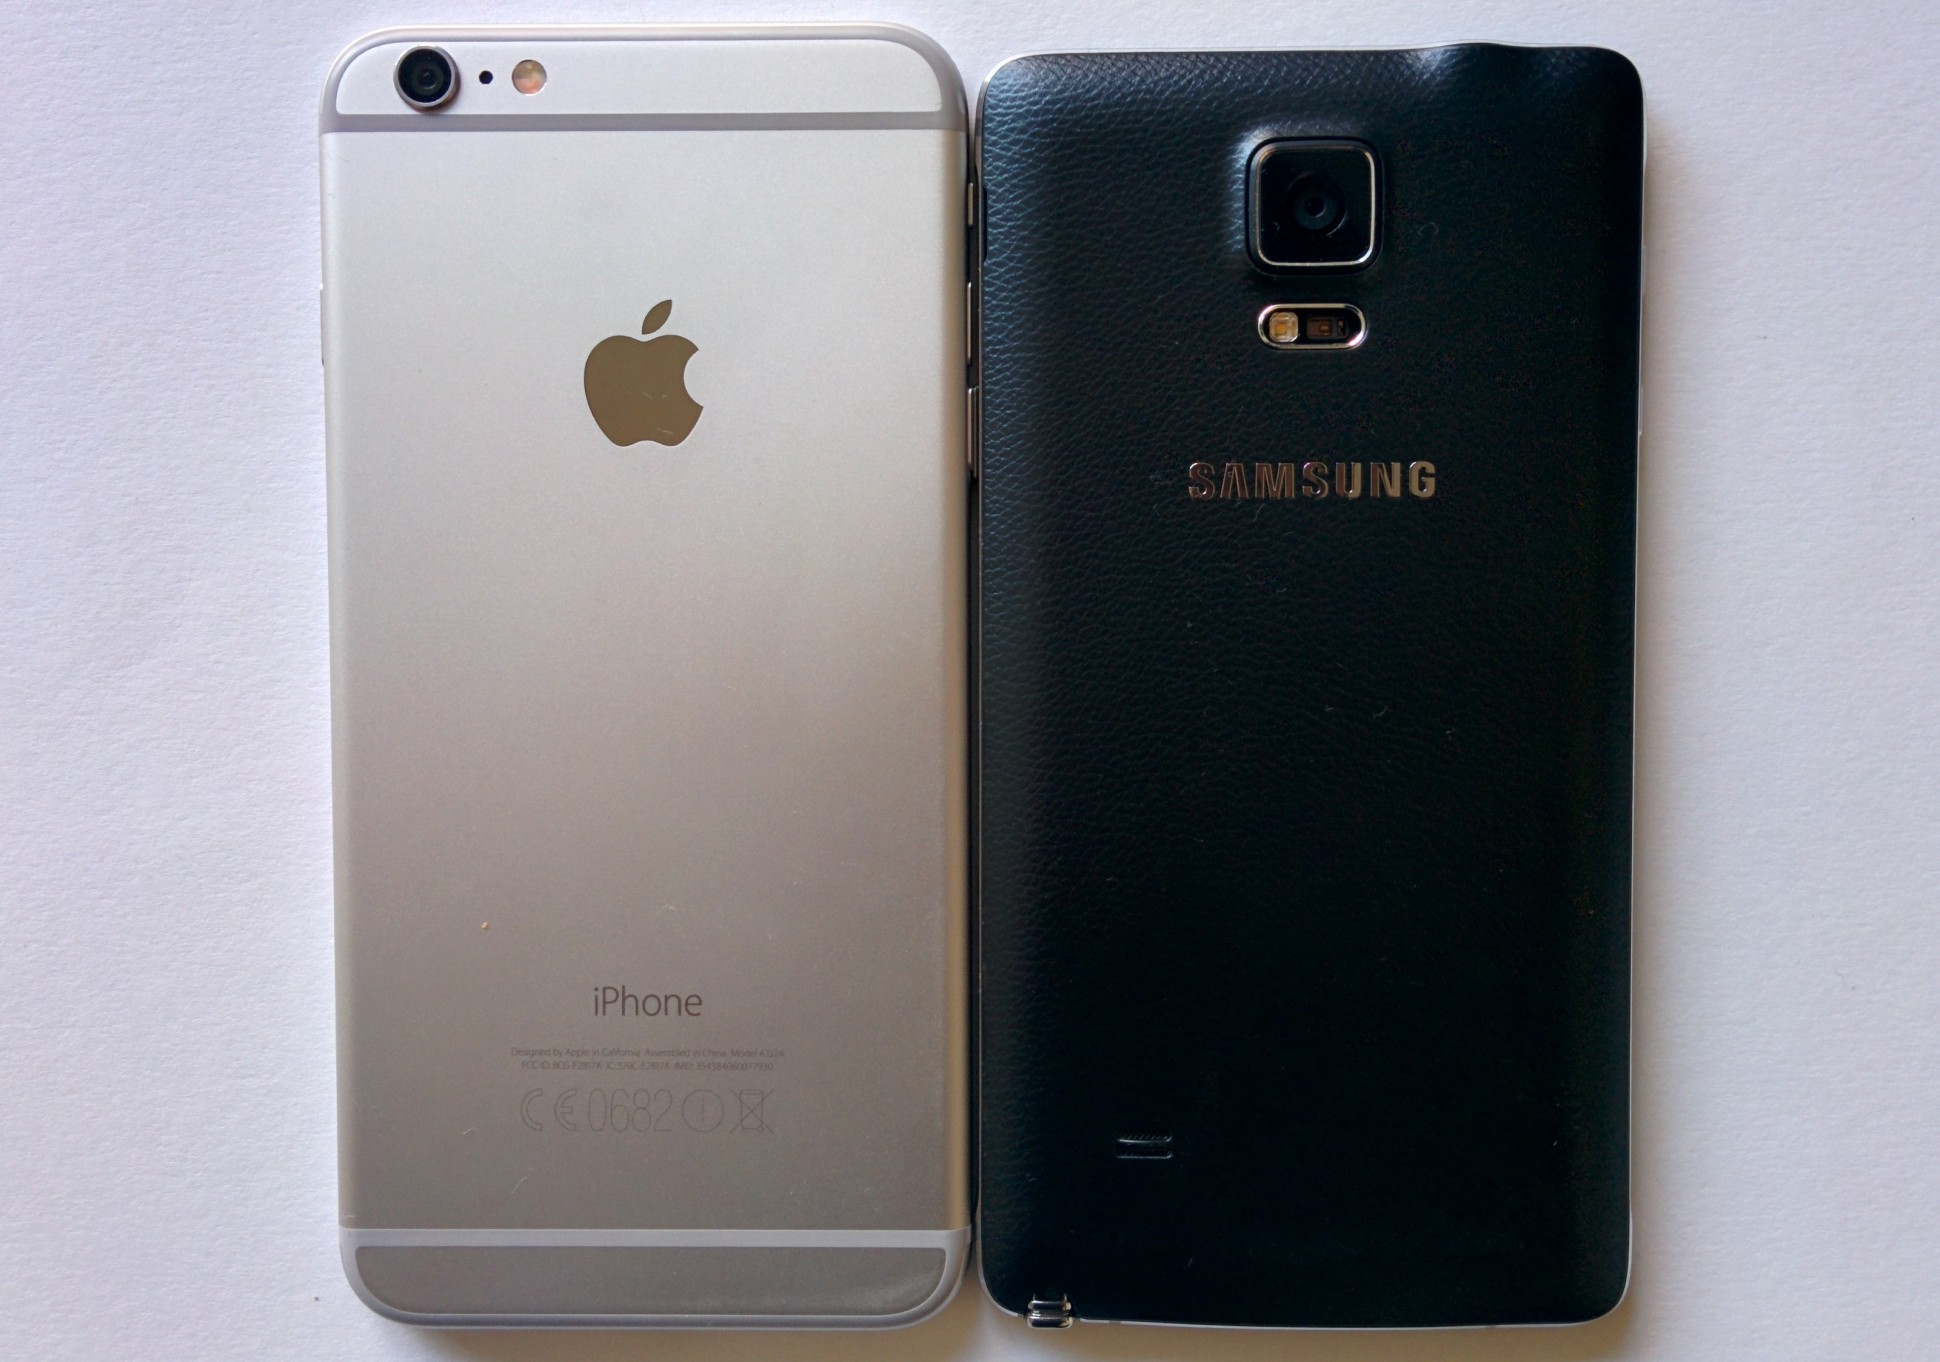 iPhone 6 Plus vs Samsung Galaxy Note 4 Camera